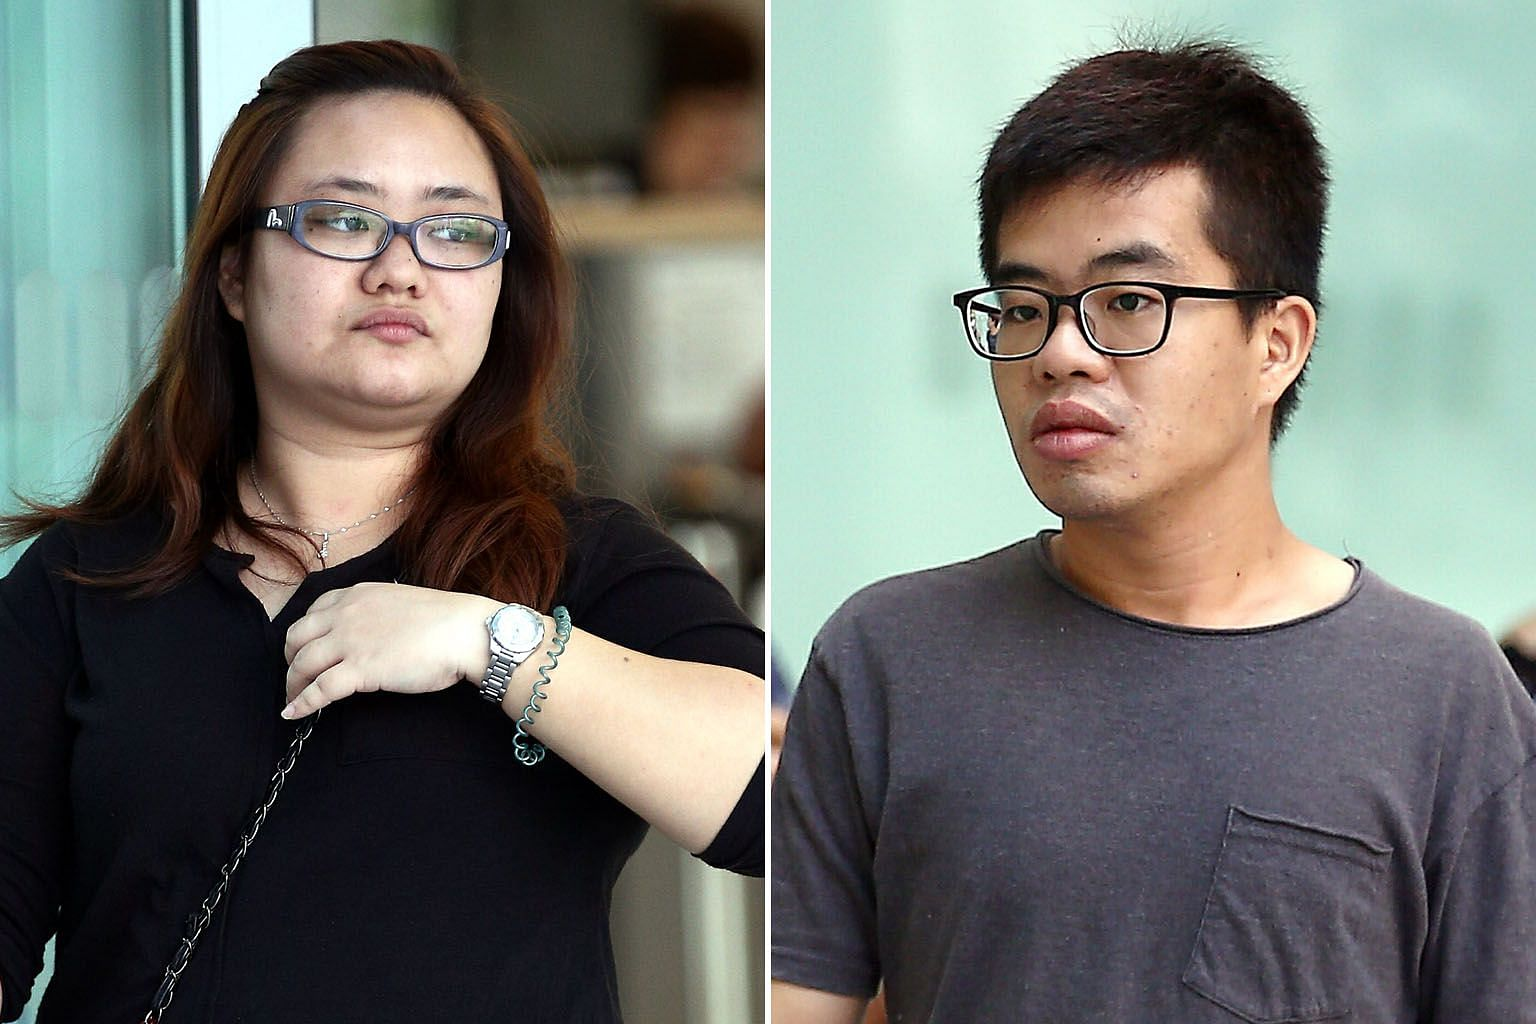 """The court heard that Amanda Yeo Pei Min told her then lover Leong Wei Guo (both above) to kill her husband as his death would """"settle all her problems"""". The Straits Times understands that they have since broken up and Yeo is also divorced from her hu"""